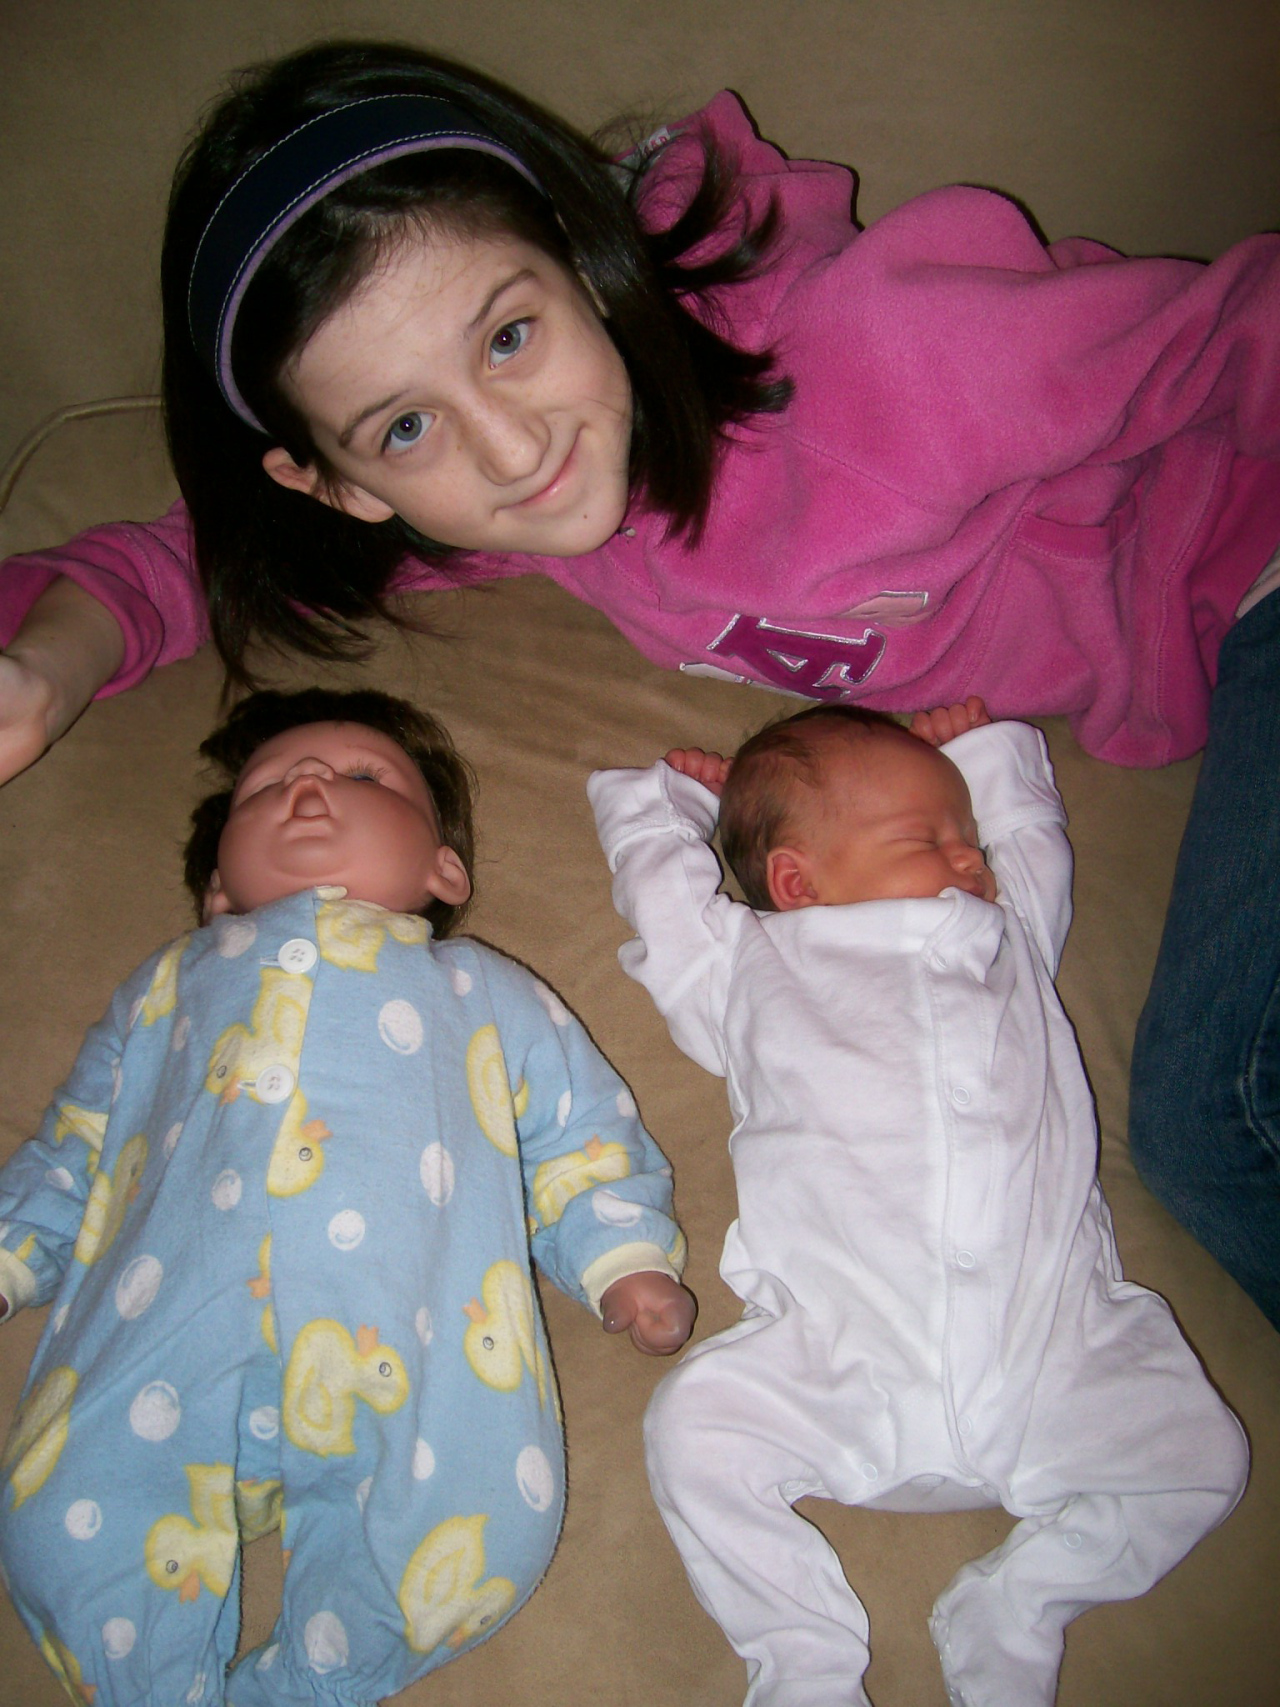 Charlotte and her babies, Charles and Beatrix.